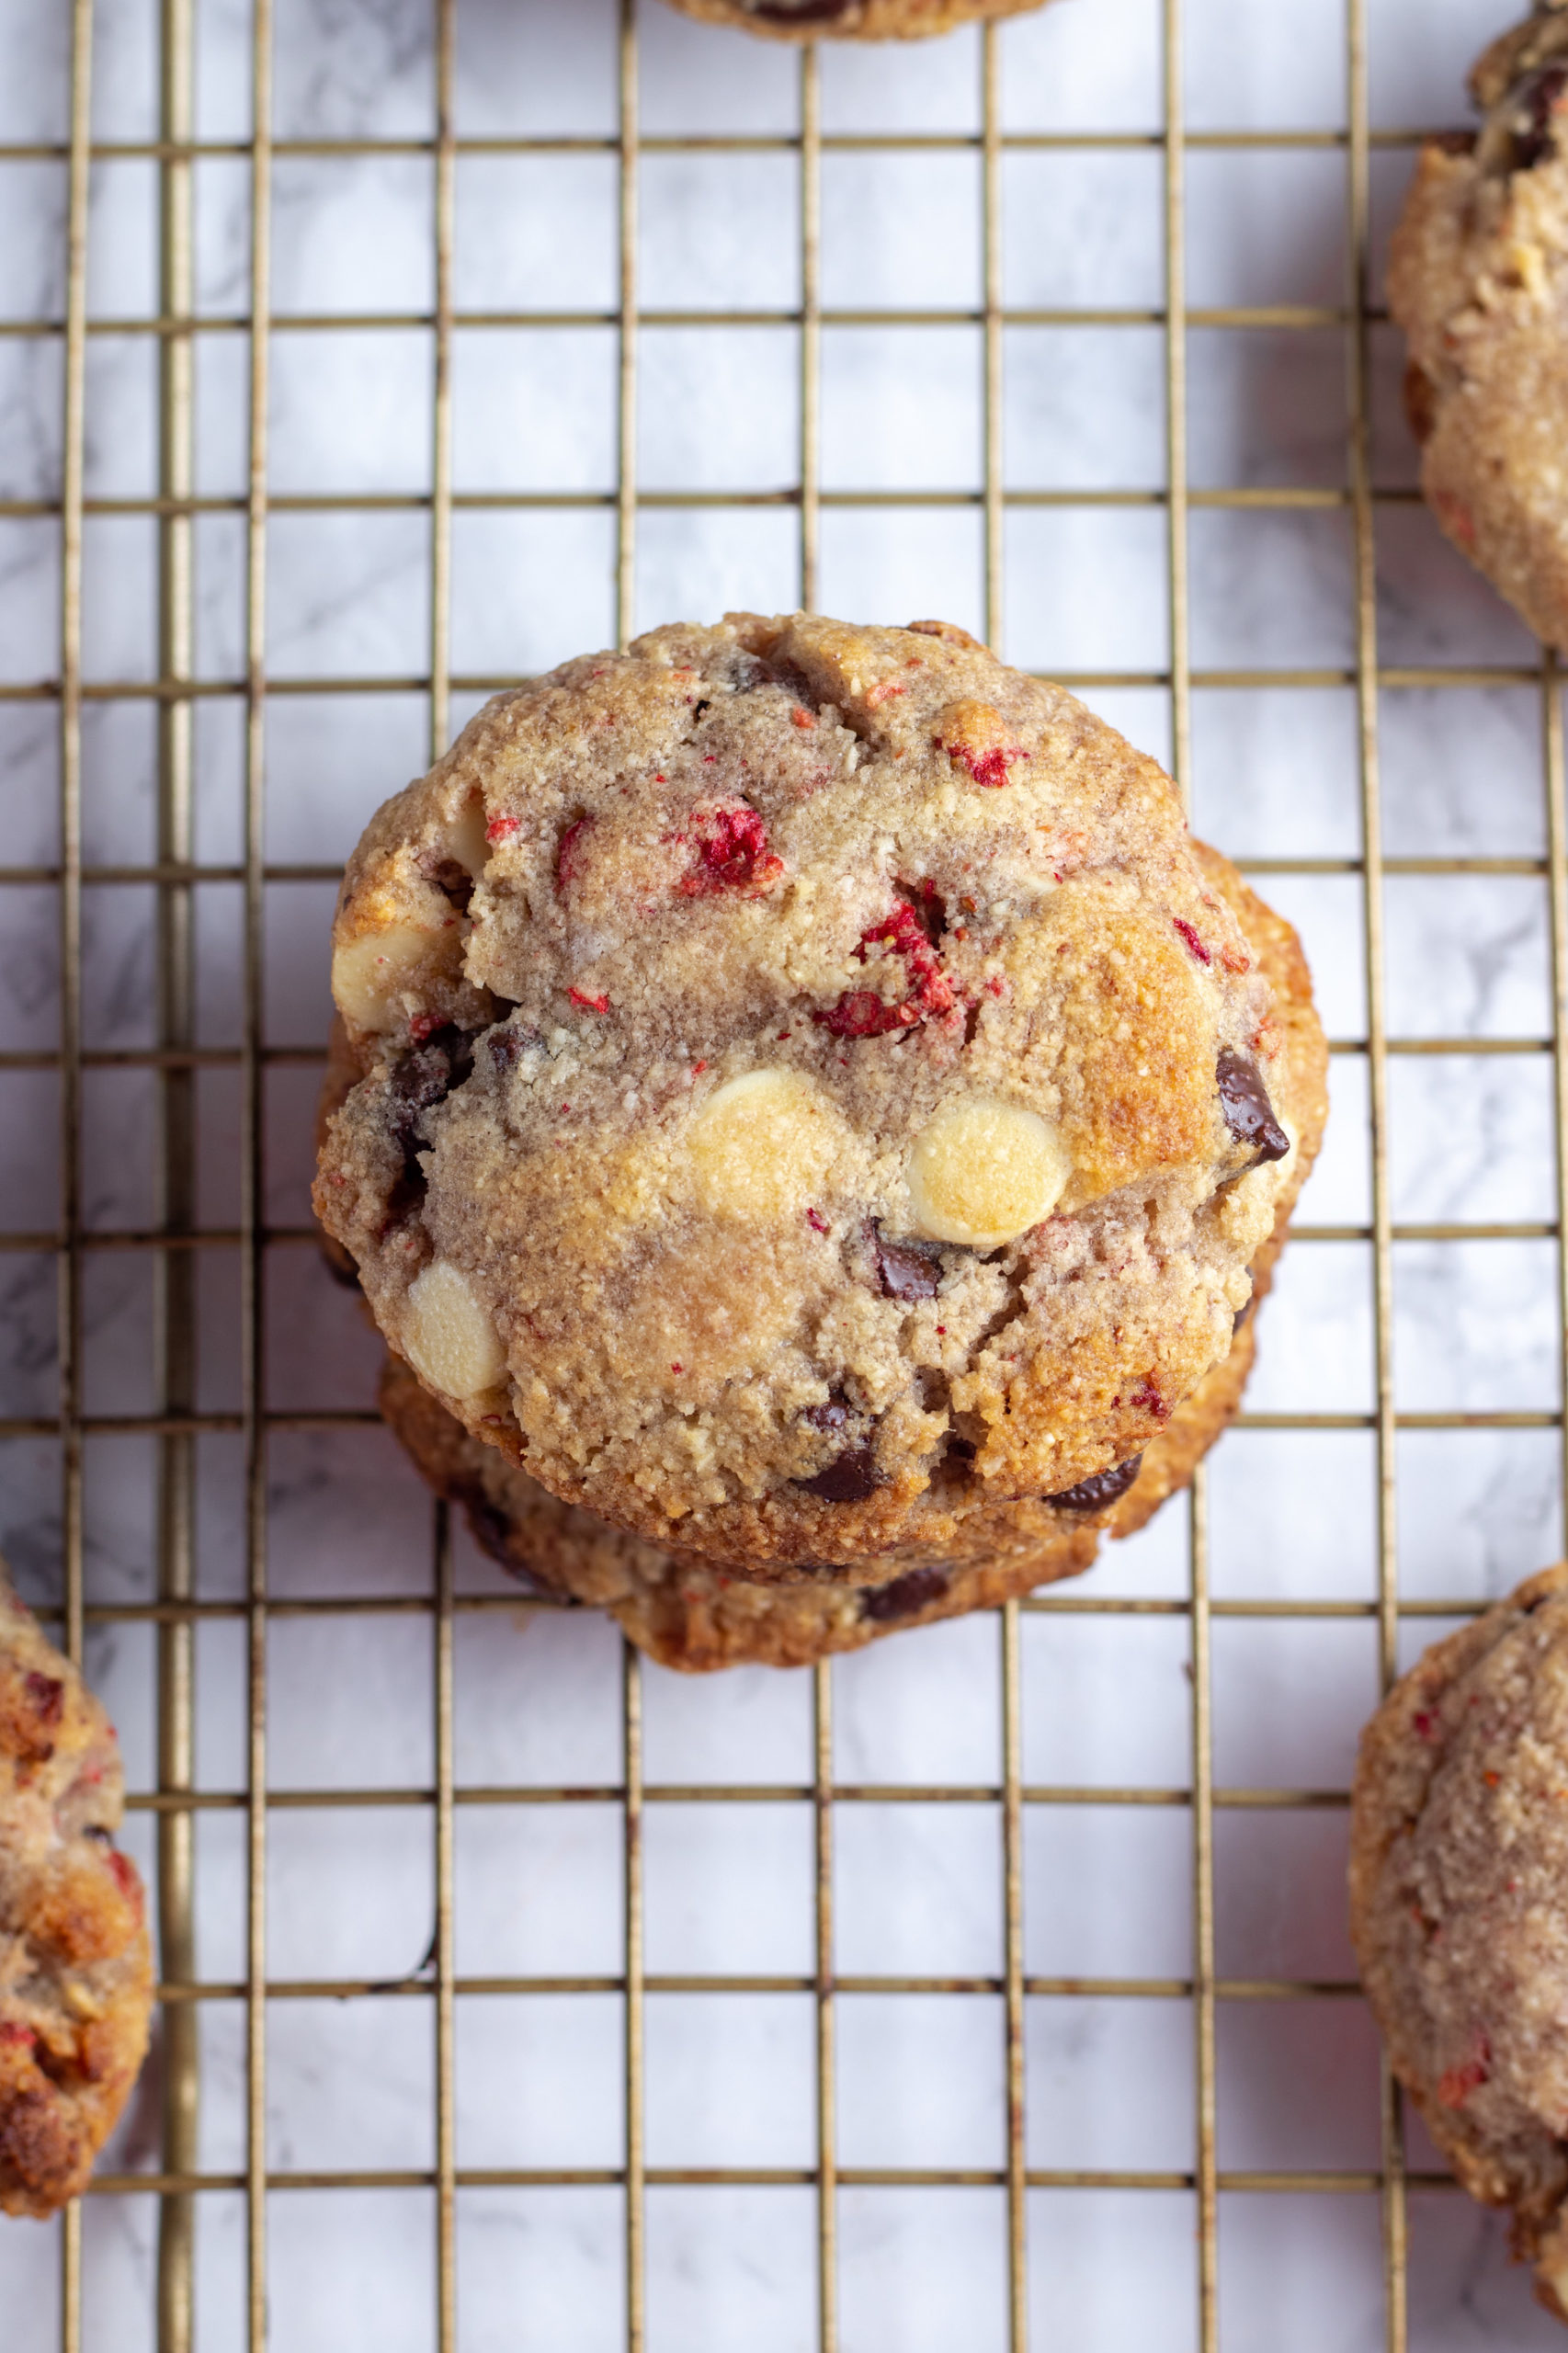 Low carb chocolate chip cookies with strawberry and white chocolate.